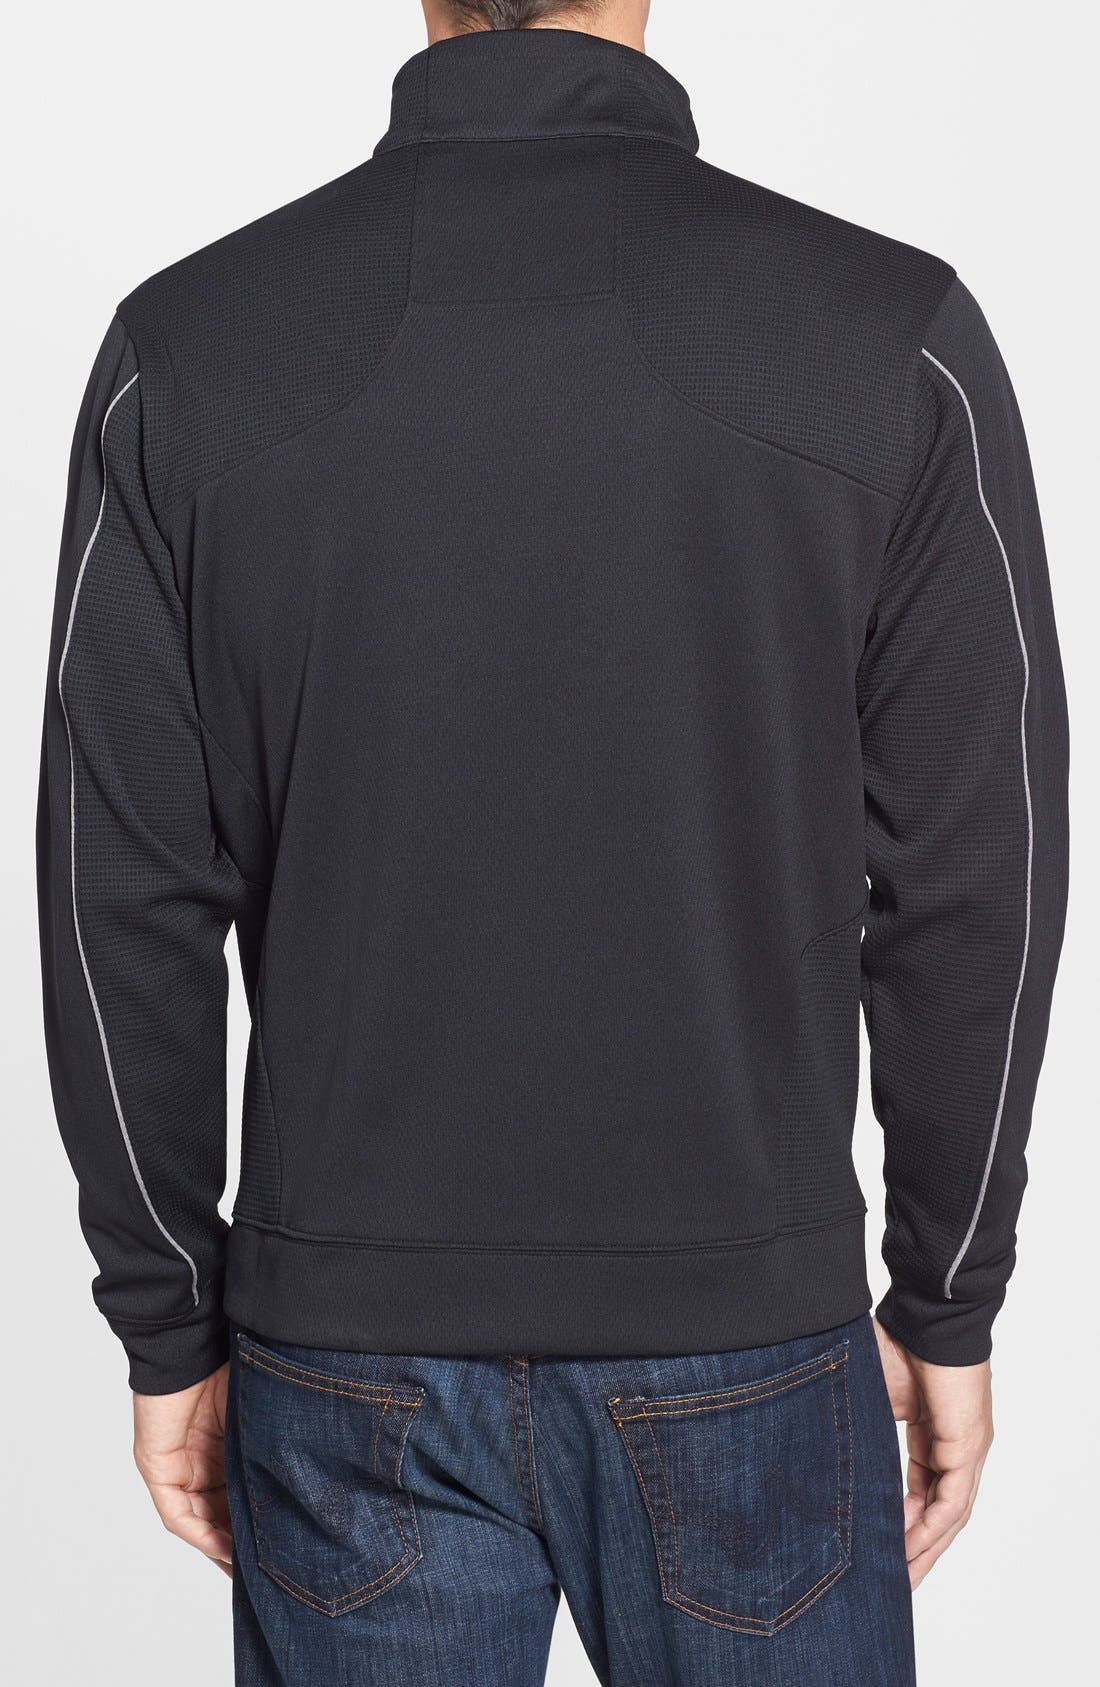 Indianapolis Colts - Edge DryTec Moisture Wicking Half Zip Pullover,                             Alternate thumbnail 2, color,                             001